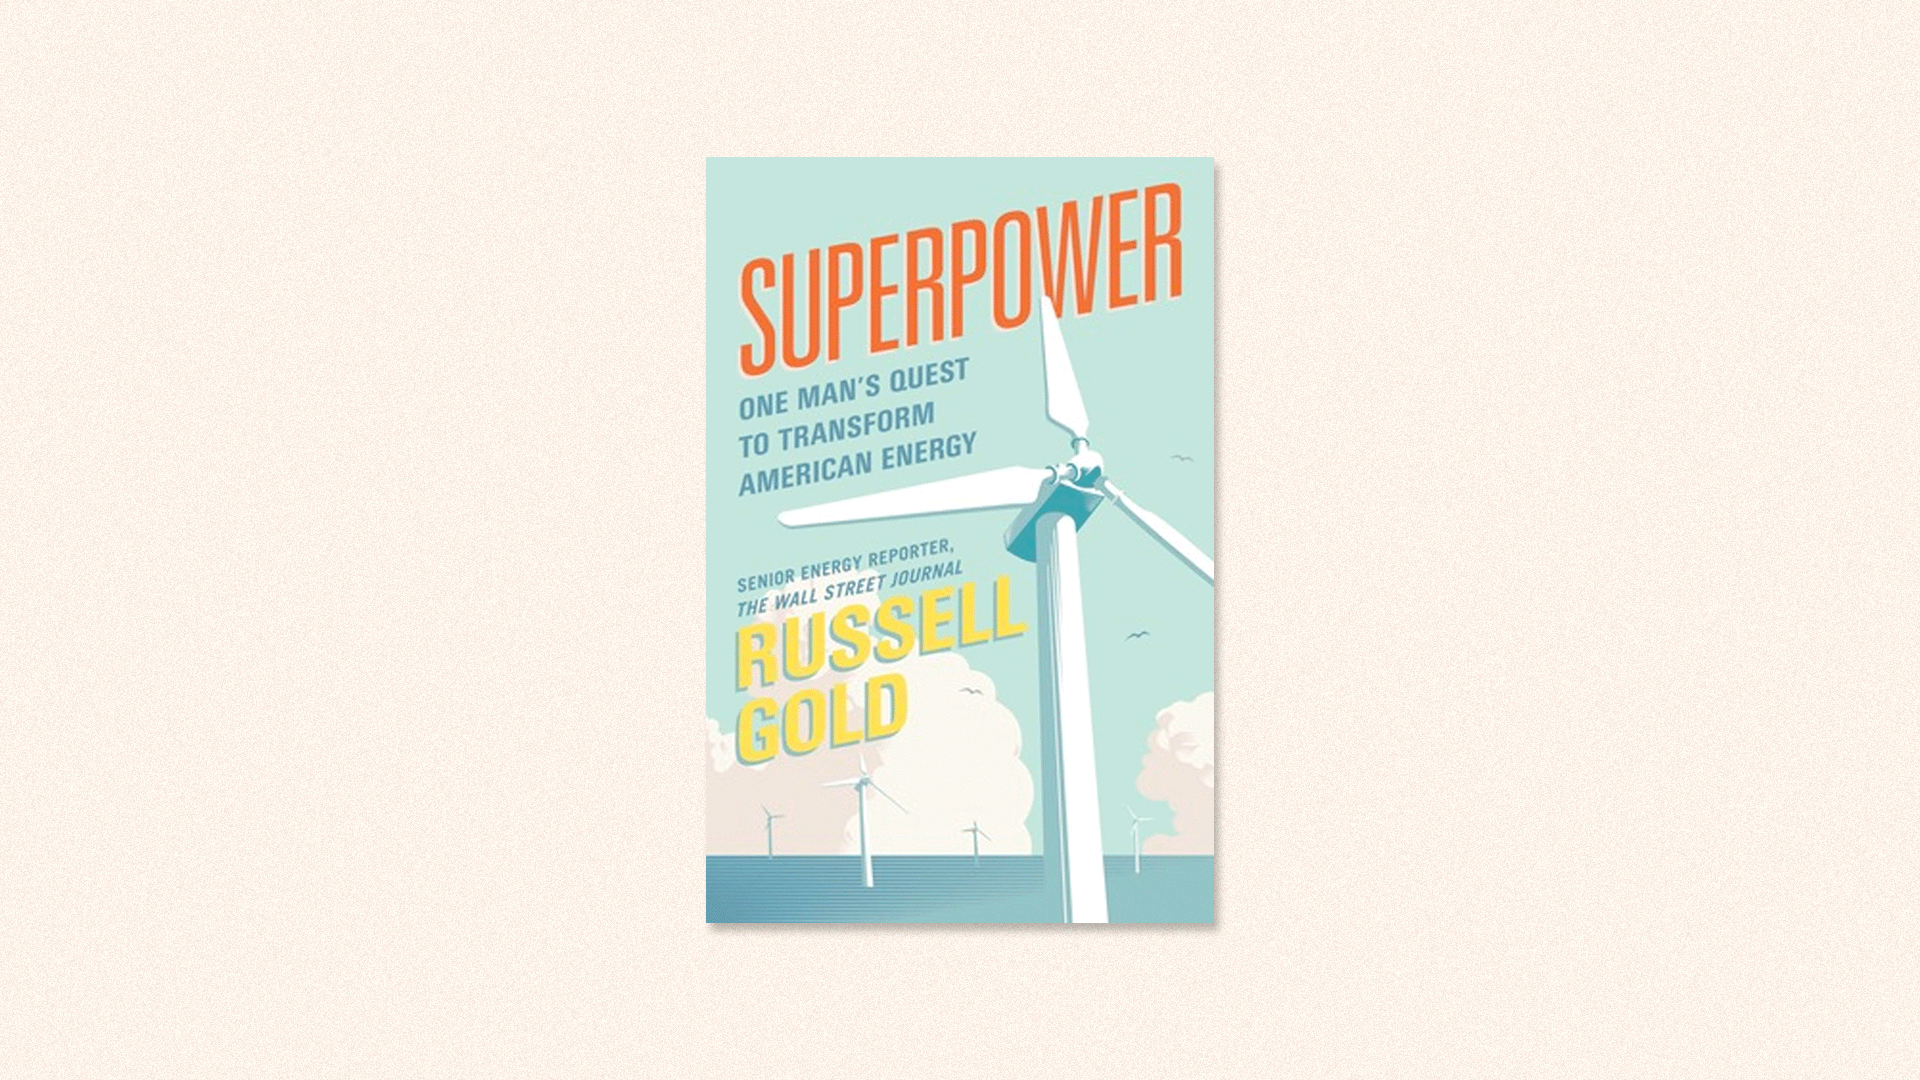 Image of the new book SuperPower: One Man's Quest to Transform American Energy